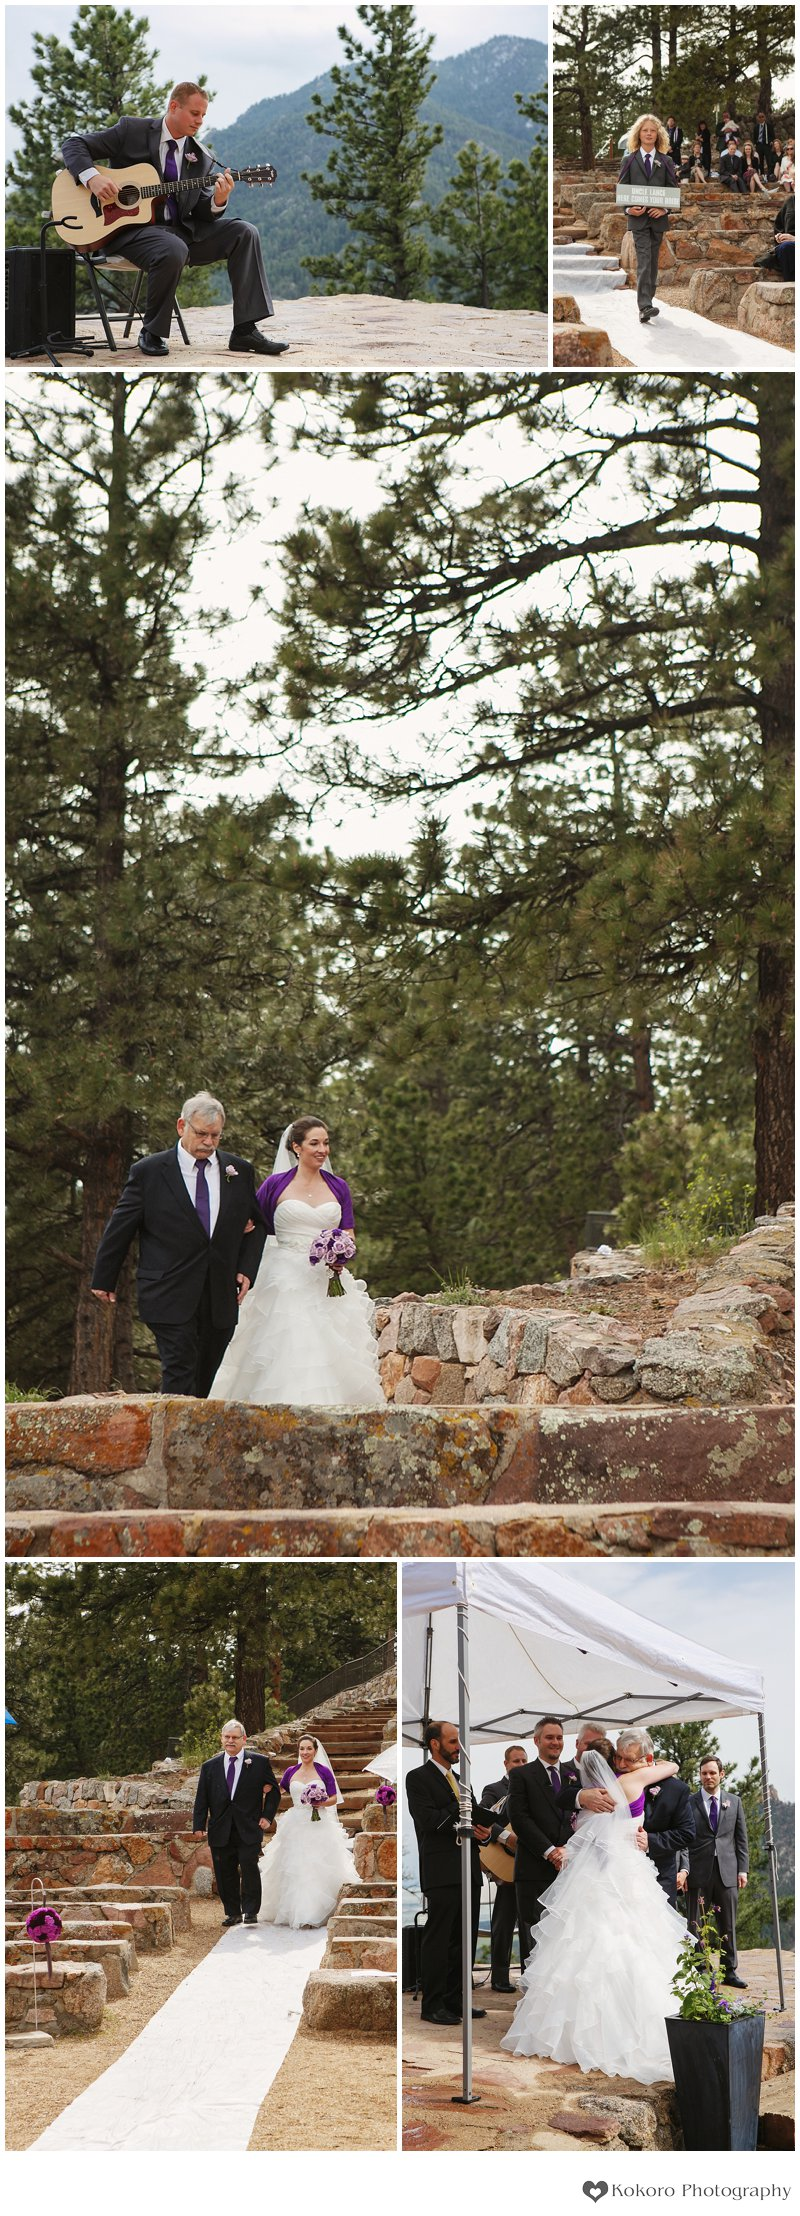 Boulder Sunrise Amphitheater Wedding0093